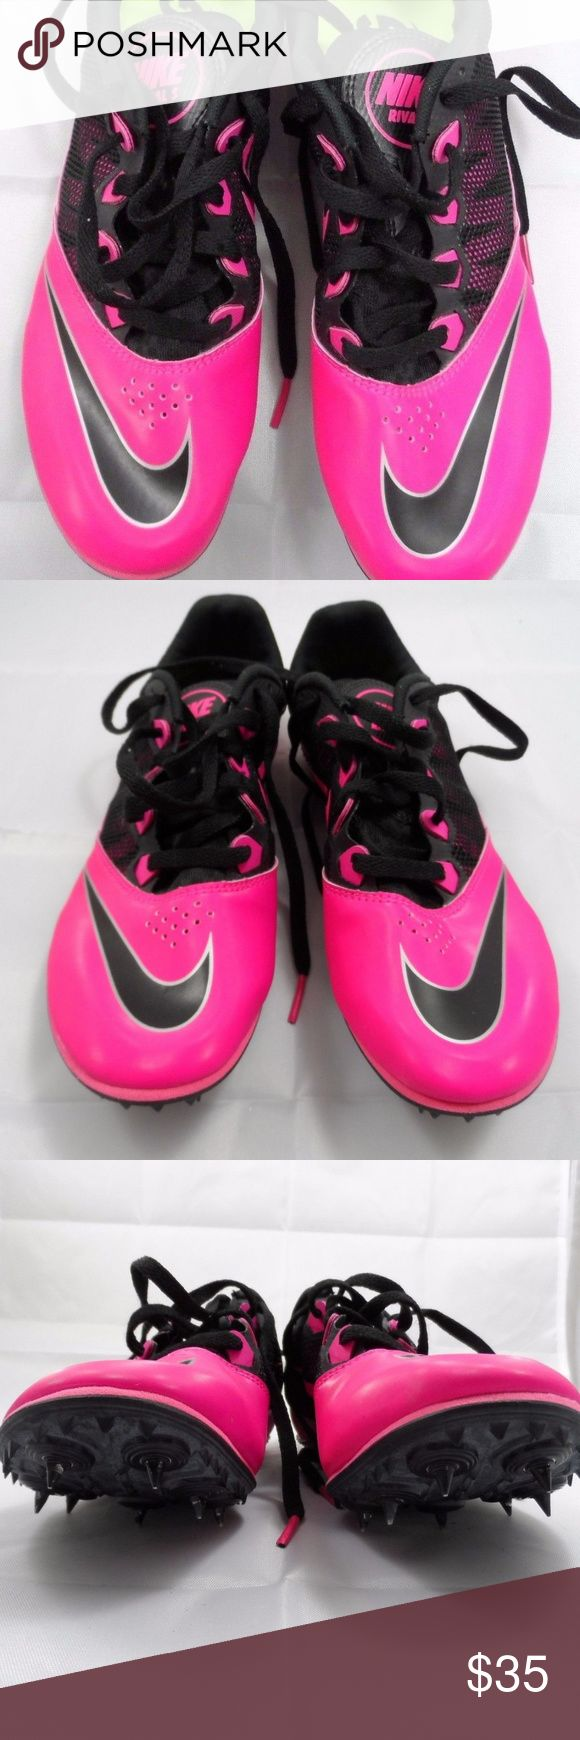 Nike Zoom Rival S Sprint Spikes NIKE Zoom Rival S7 Sprint Spikes Women's Shoes Pink Black CLEATS 615998-600 8.5 Nike Shoes Athletic Shoes